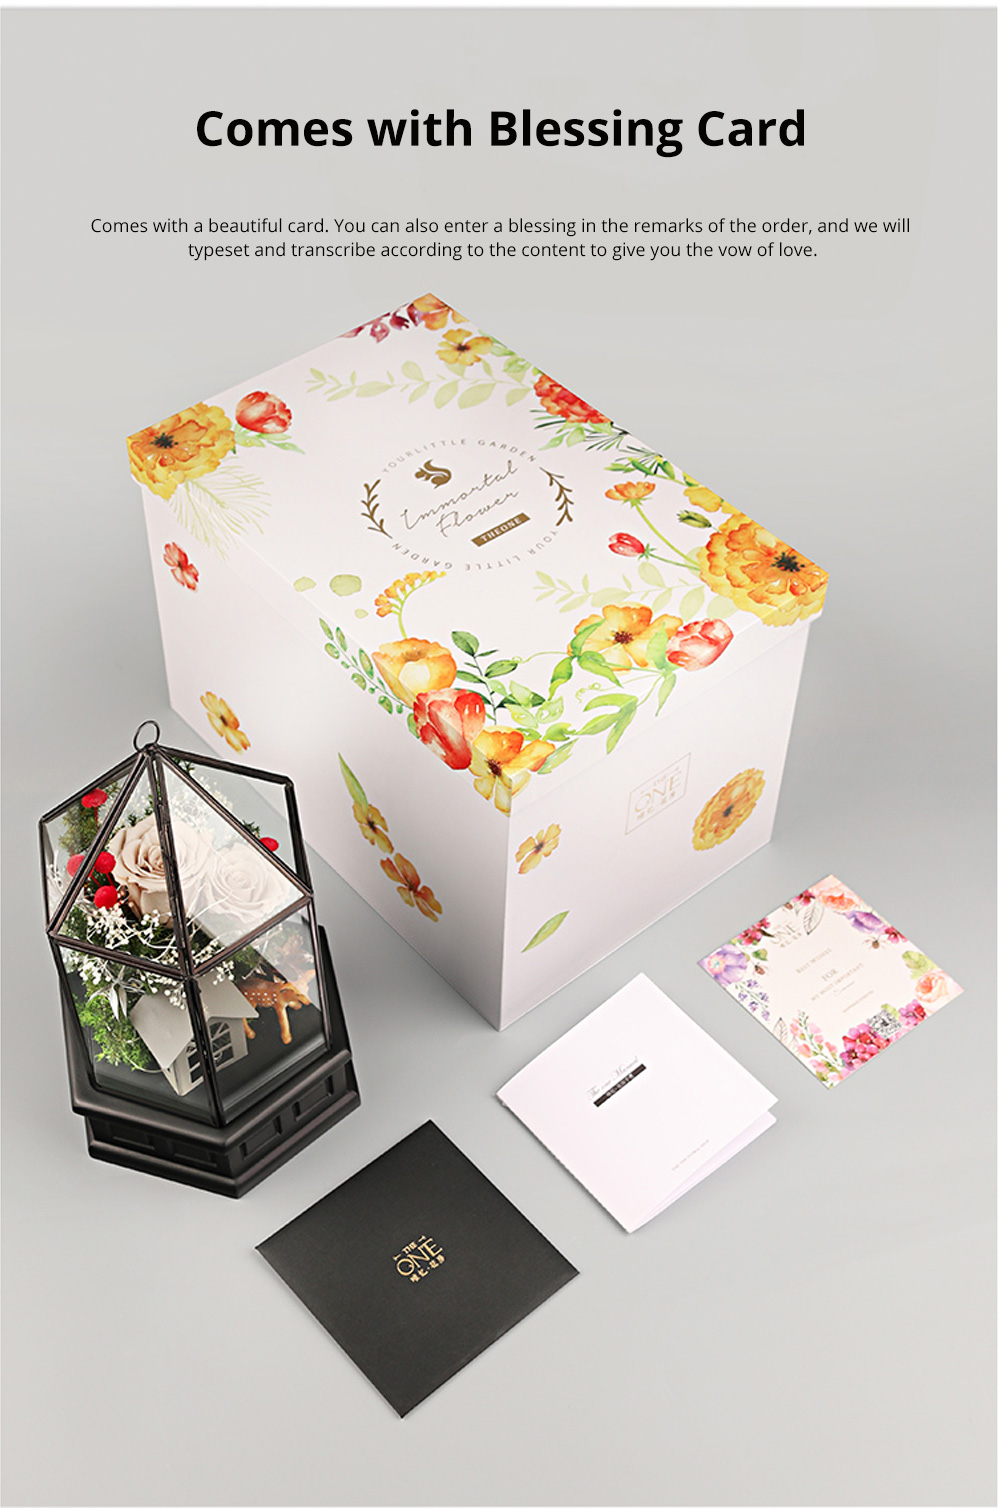 Immortal Flower Rose with Warm Night Light Eternal Flower House Gift Box Creative Gift for Valentine's Day Christmas Birthday 4